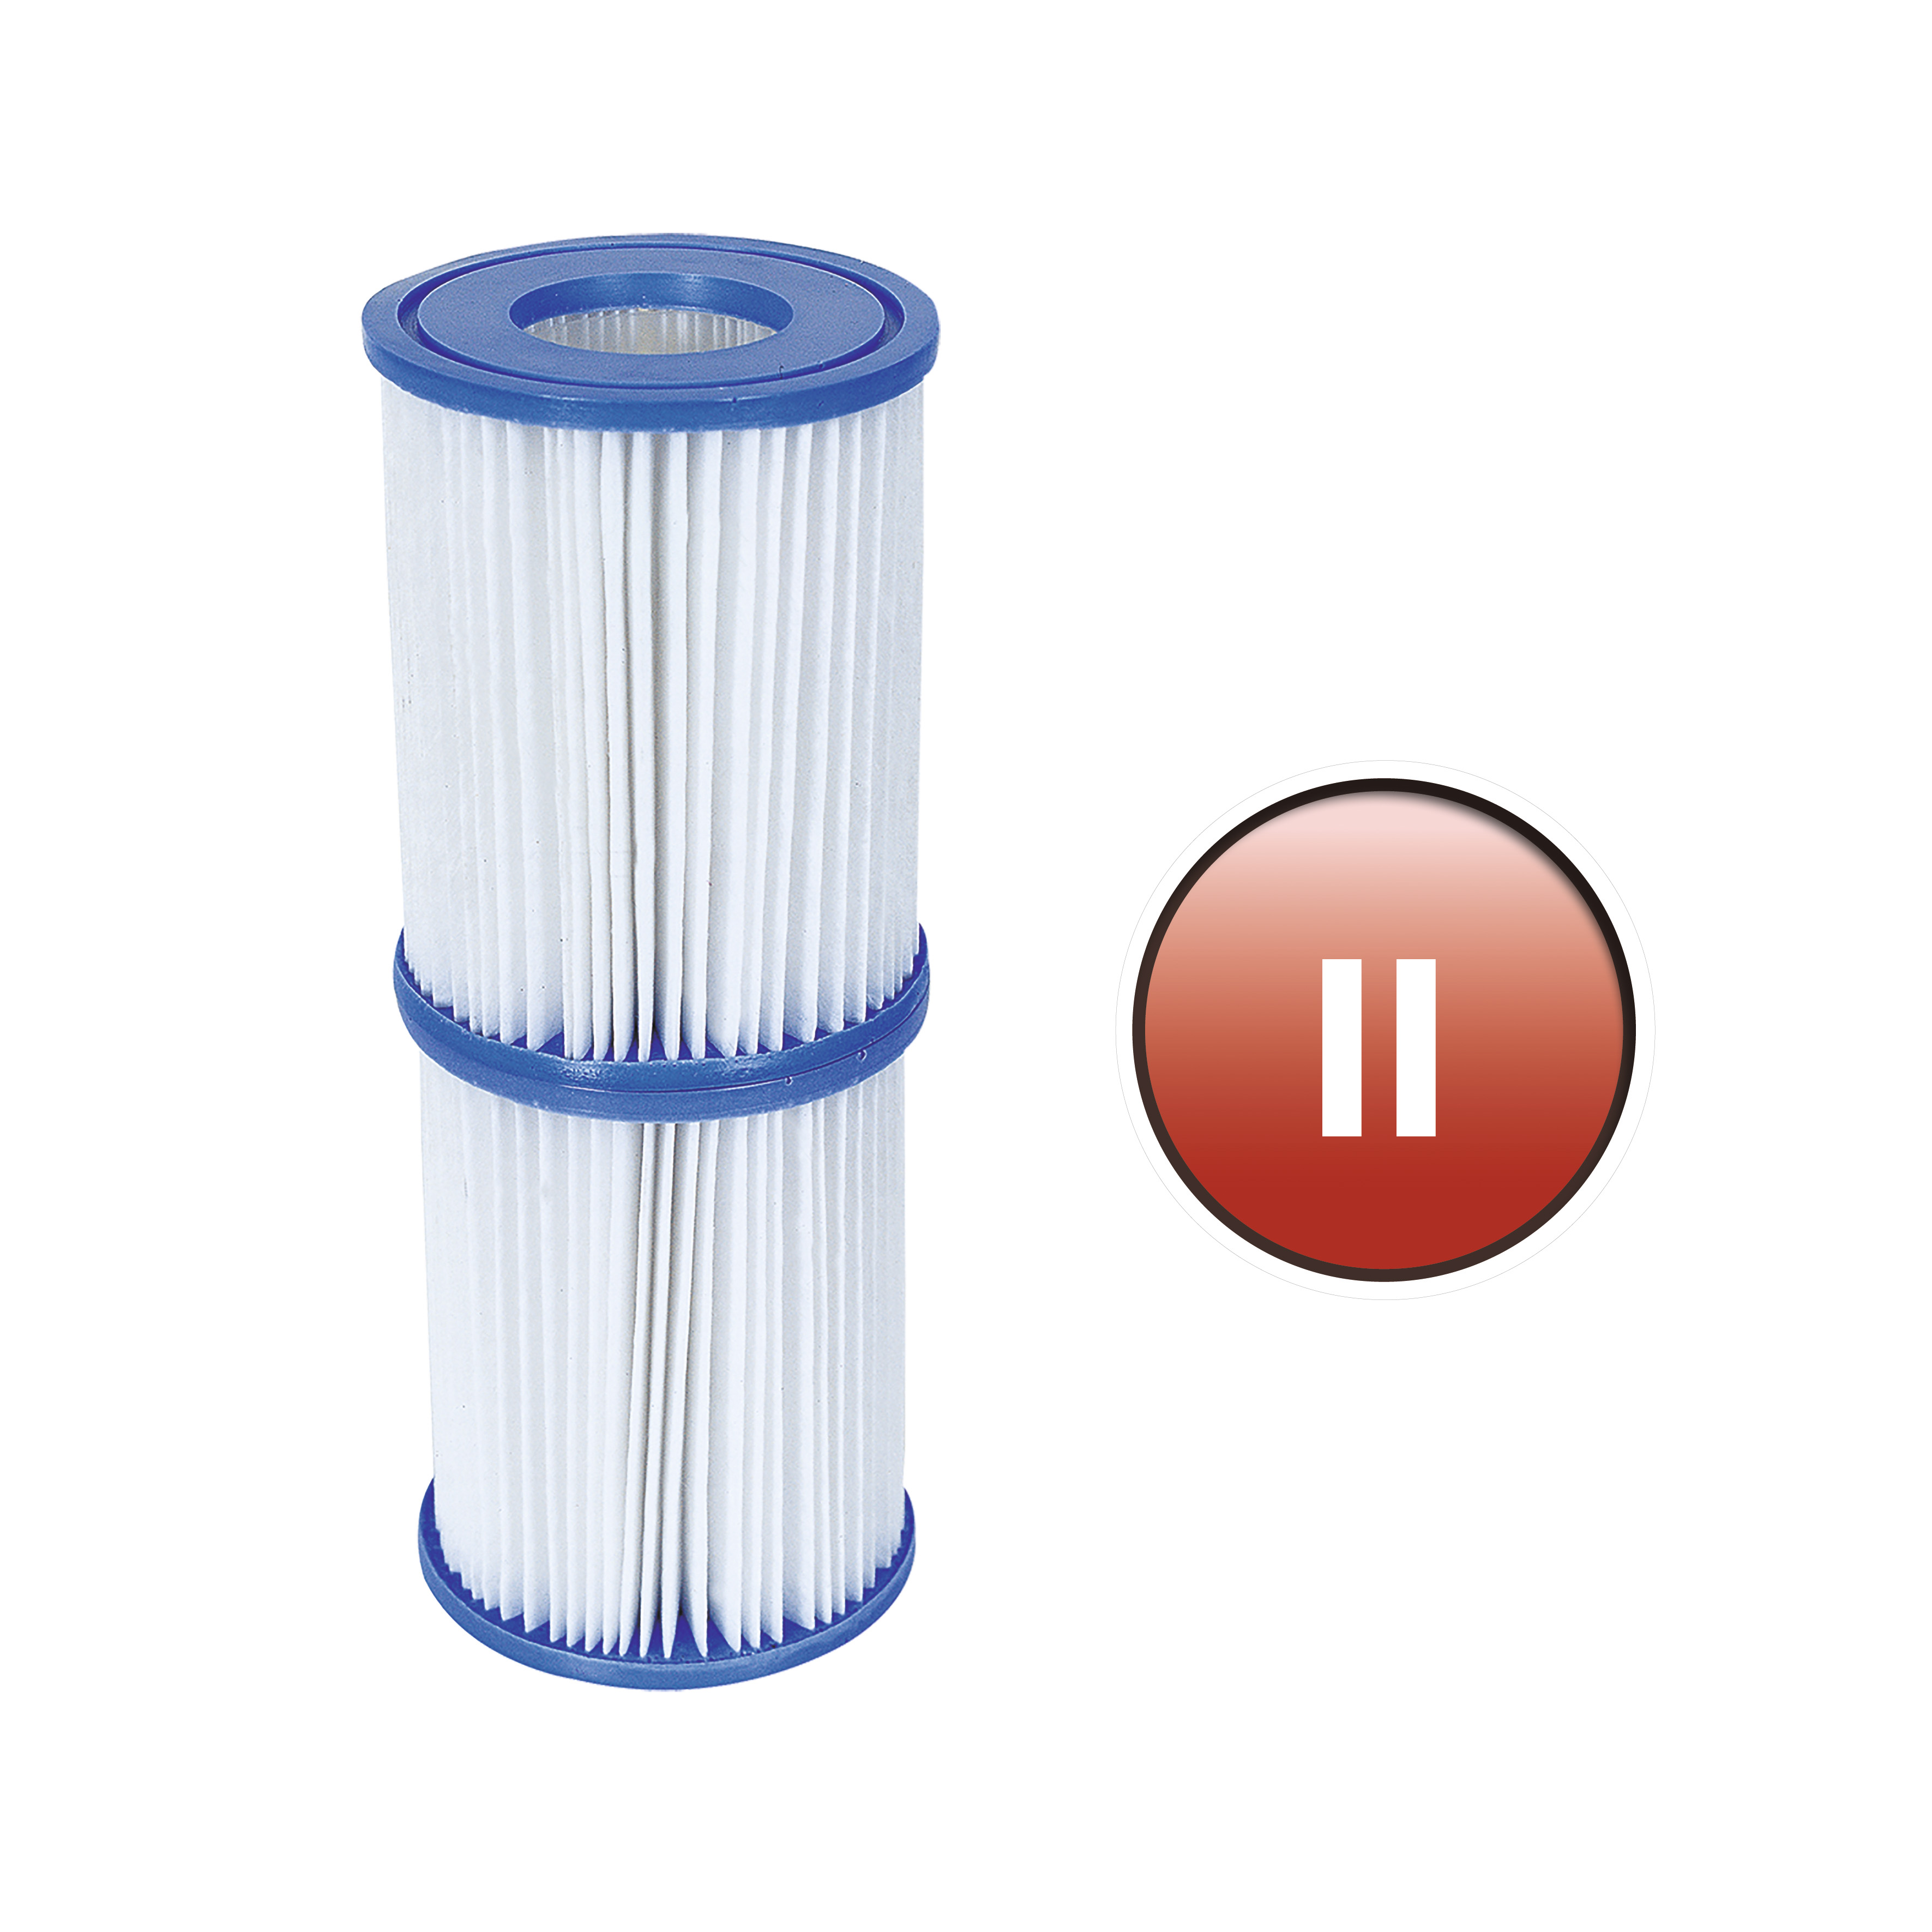 Cartridge Filter II Bestway, 10,6 х13,6 Cm (II), Item No. 58094